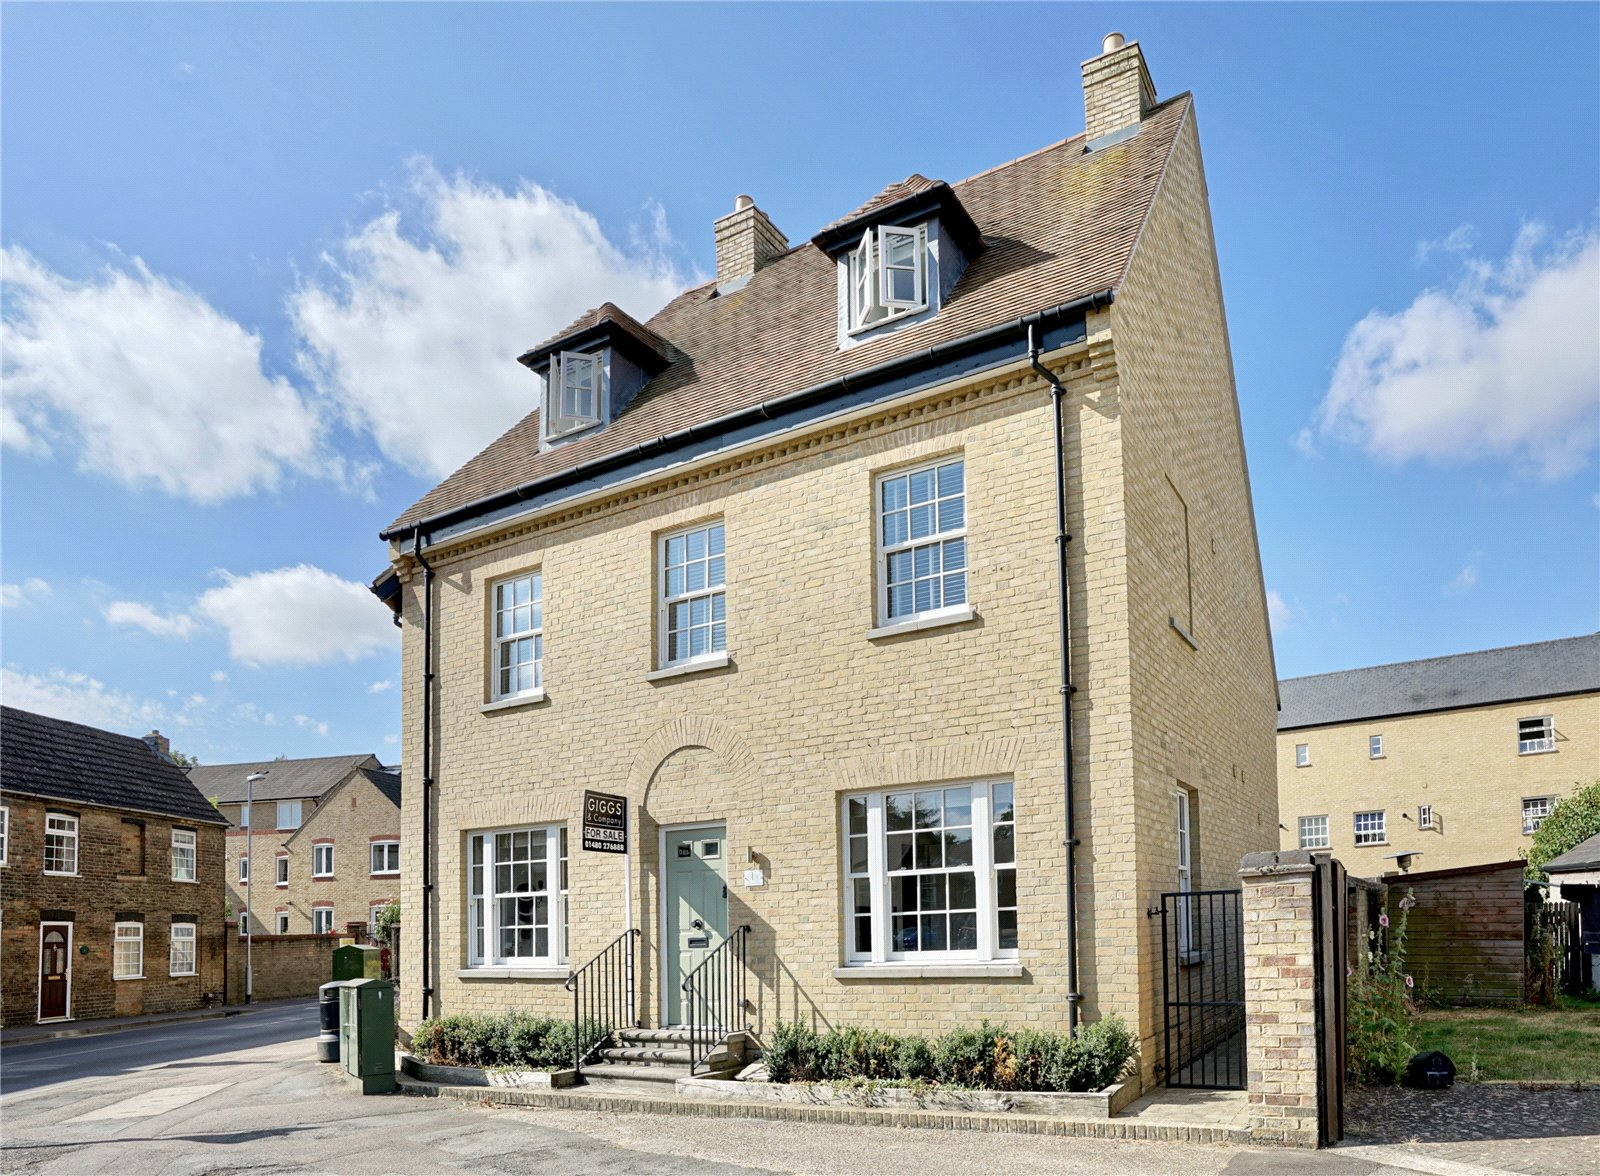 4 bed house for sale in Church Street, Steam Flour Mill, PE19 2AB  - Property Image 1